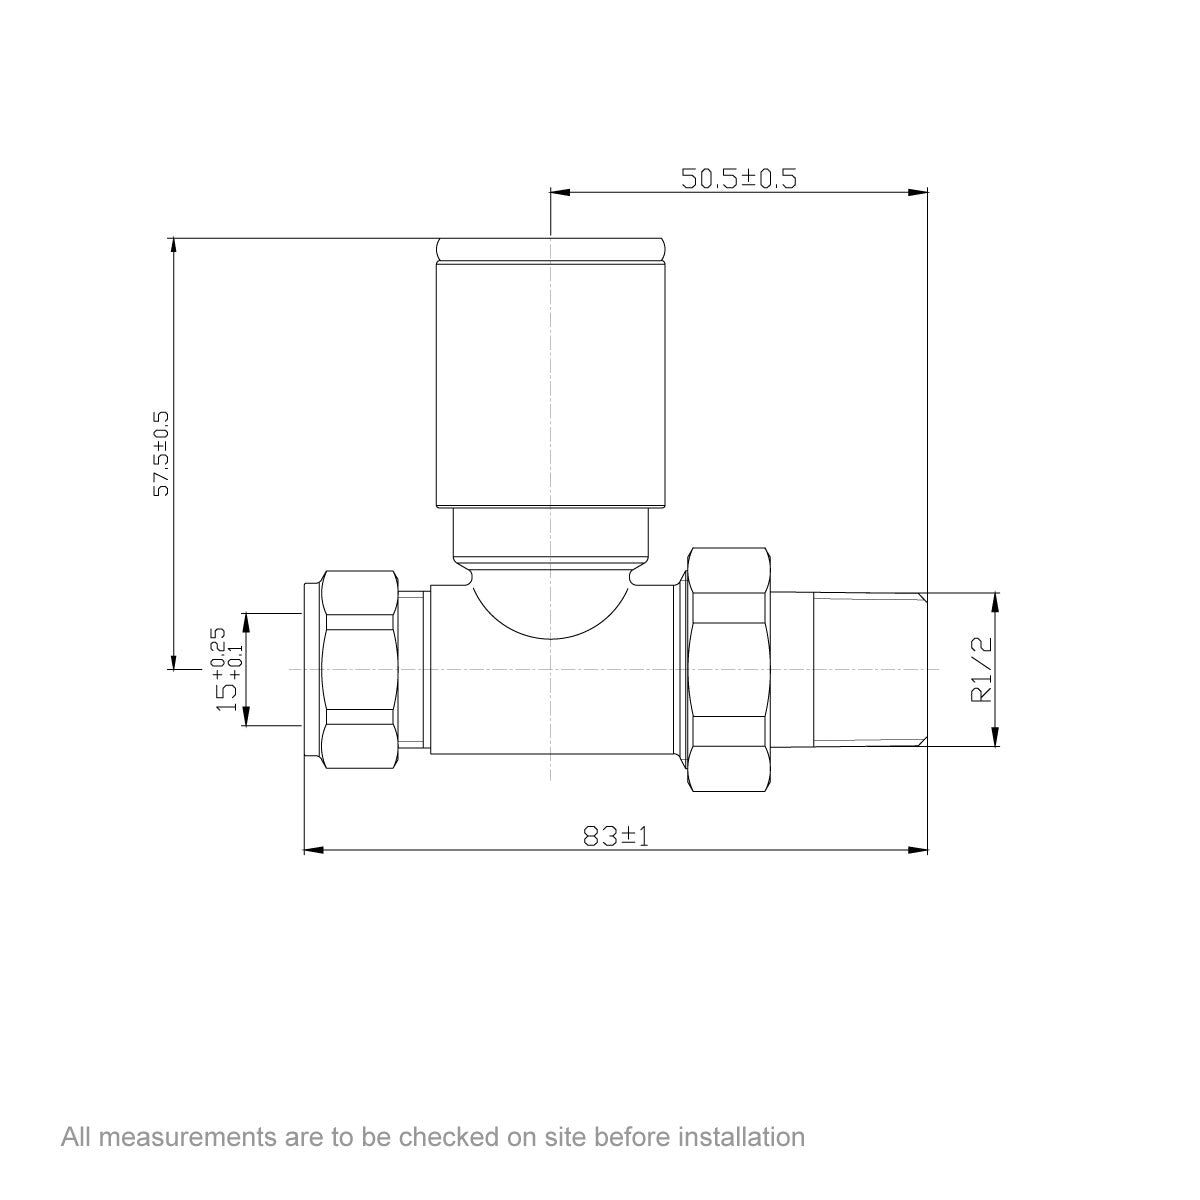 Dimensions for Orchard straight radiator valves